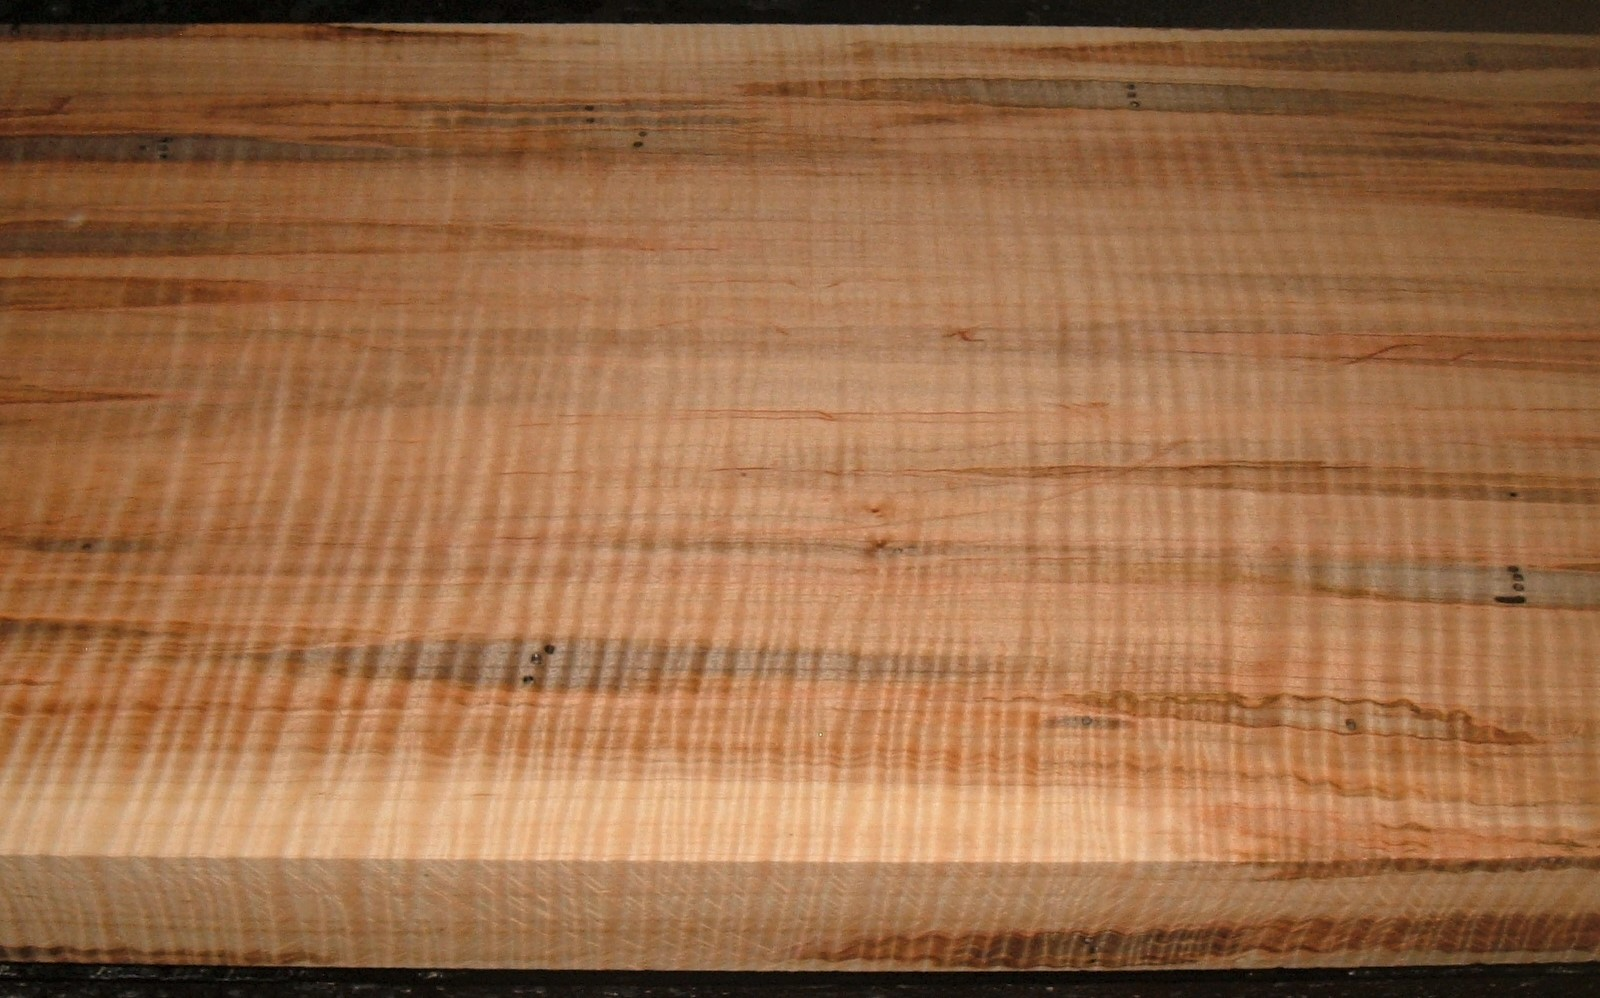 AM2103-30JJ, 1-15/16x11-3/4x50, Curly Tiger Ambrosia Wormy Maple